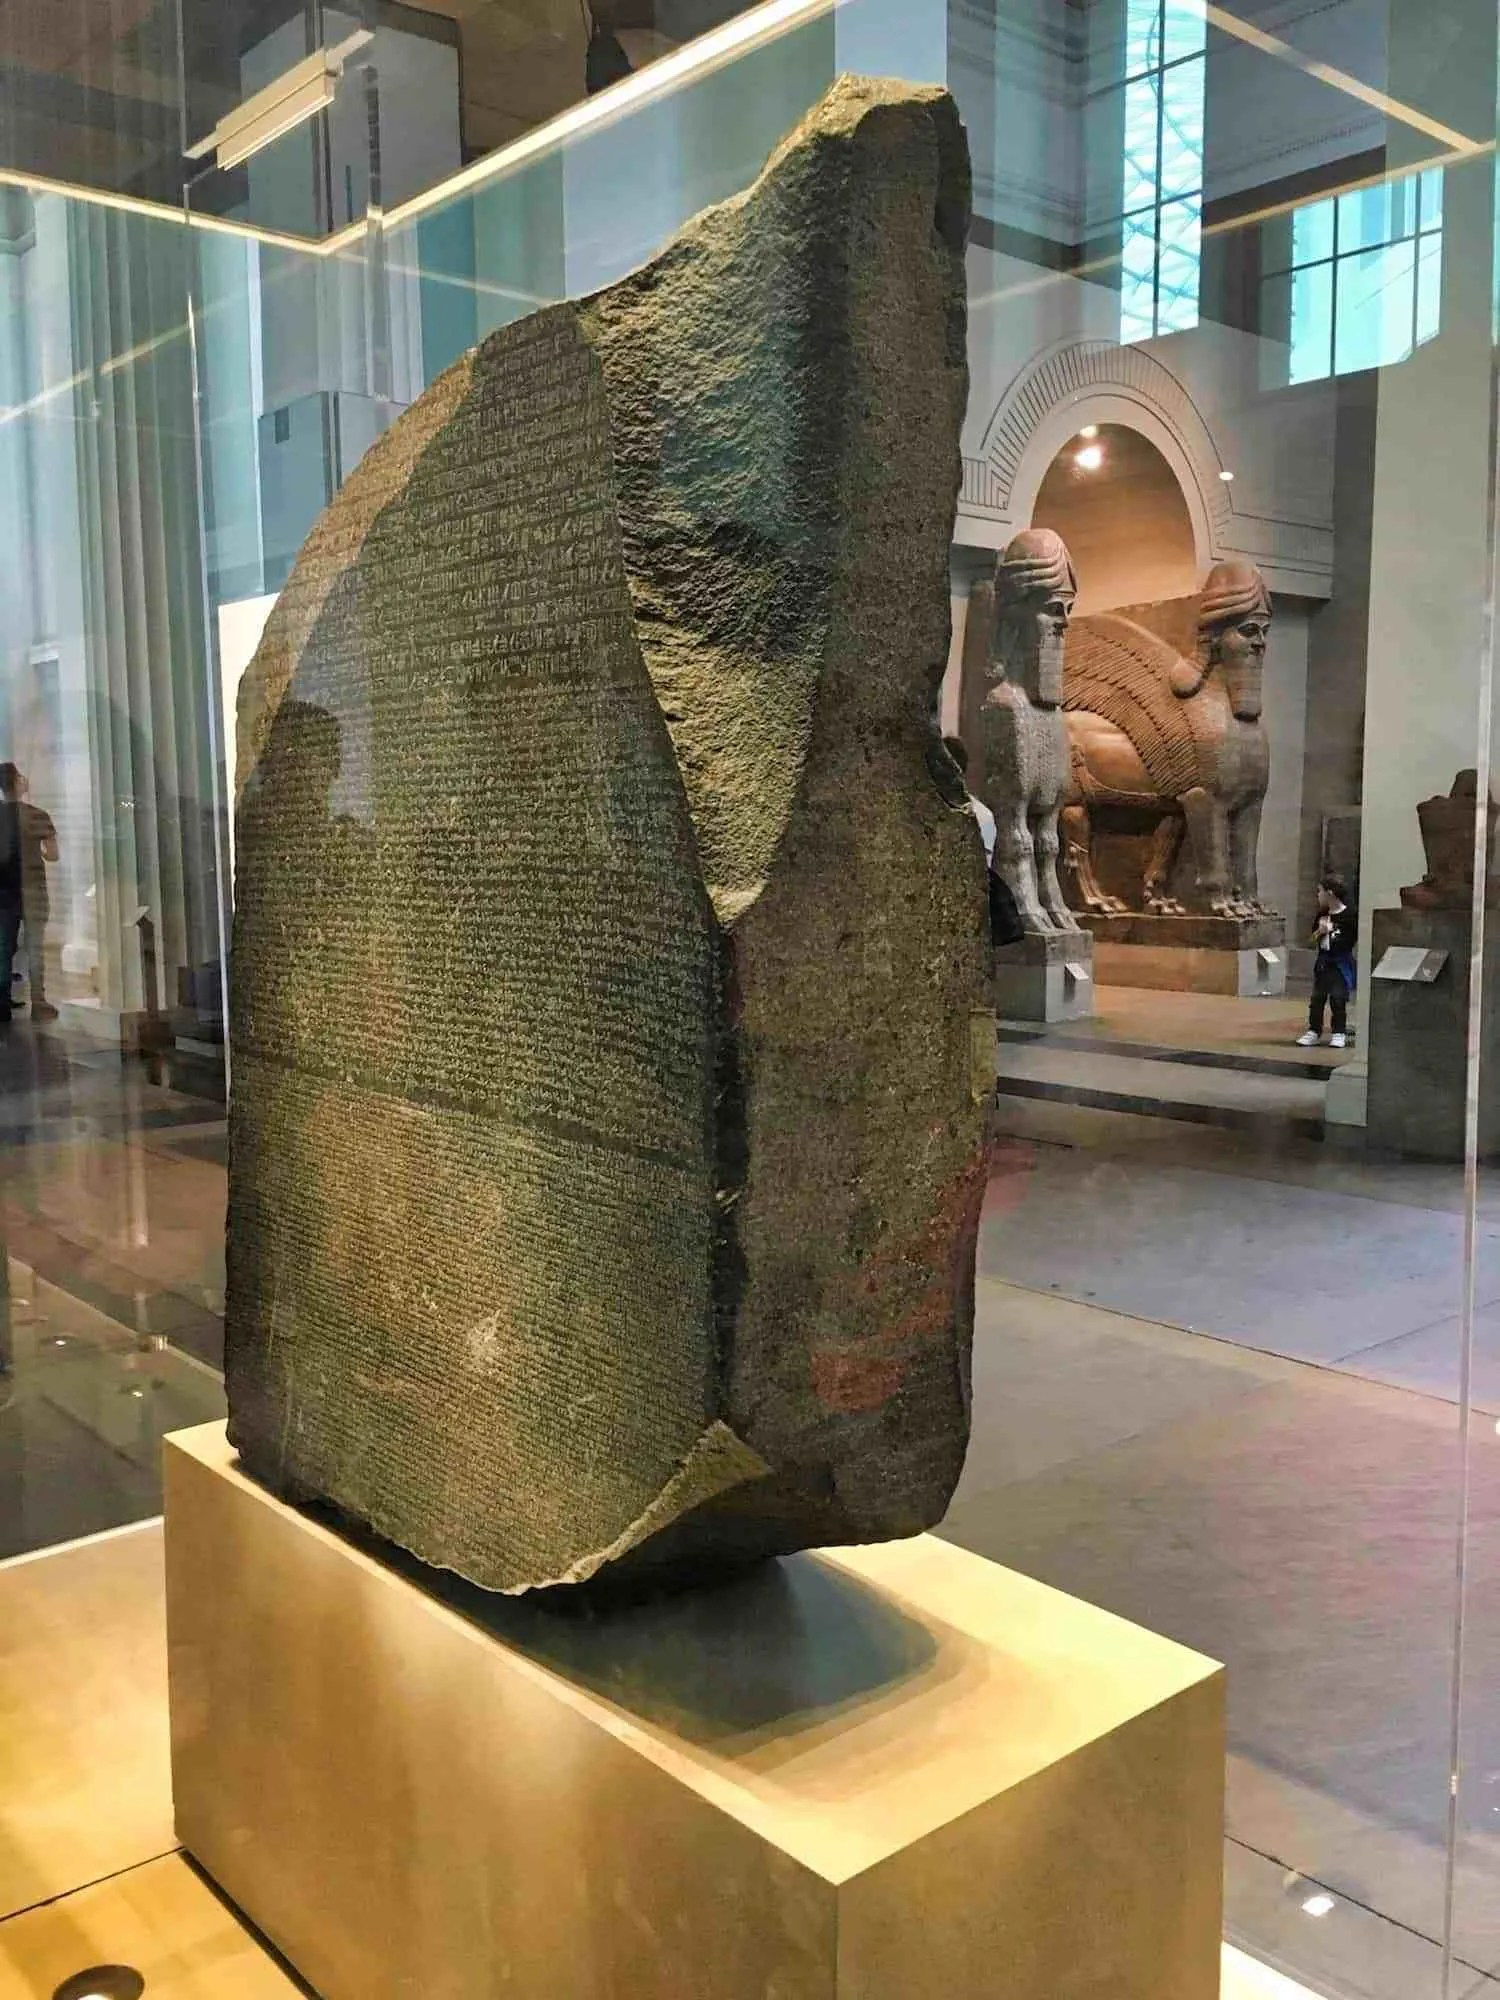 Rosetta Stone at the British Museum